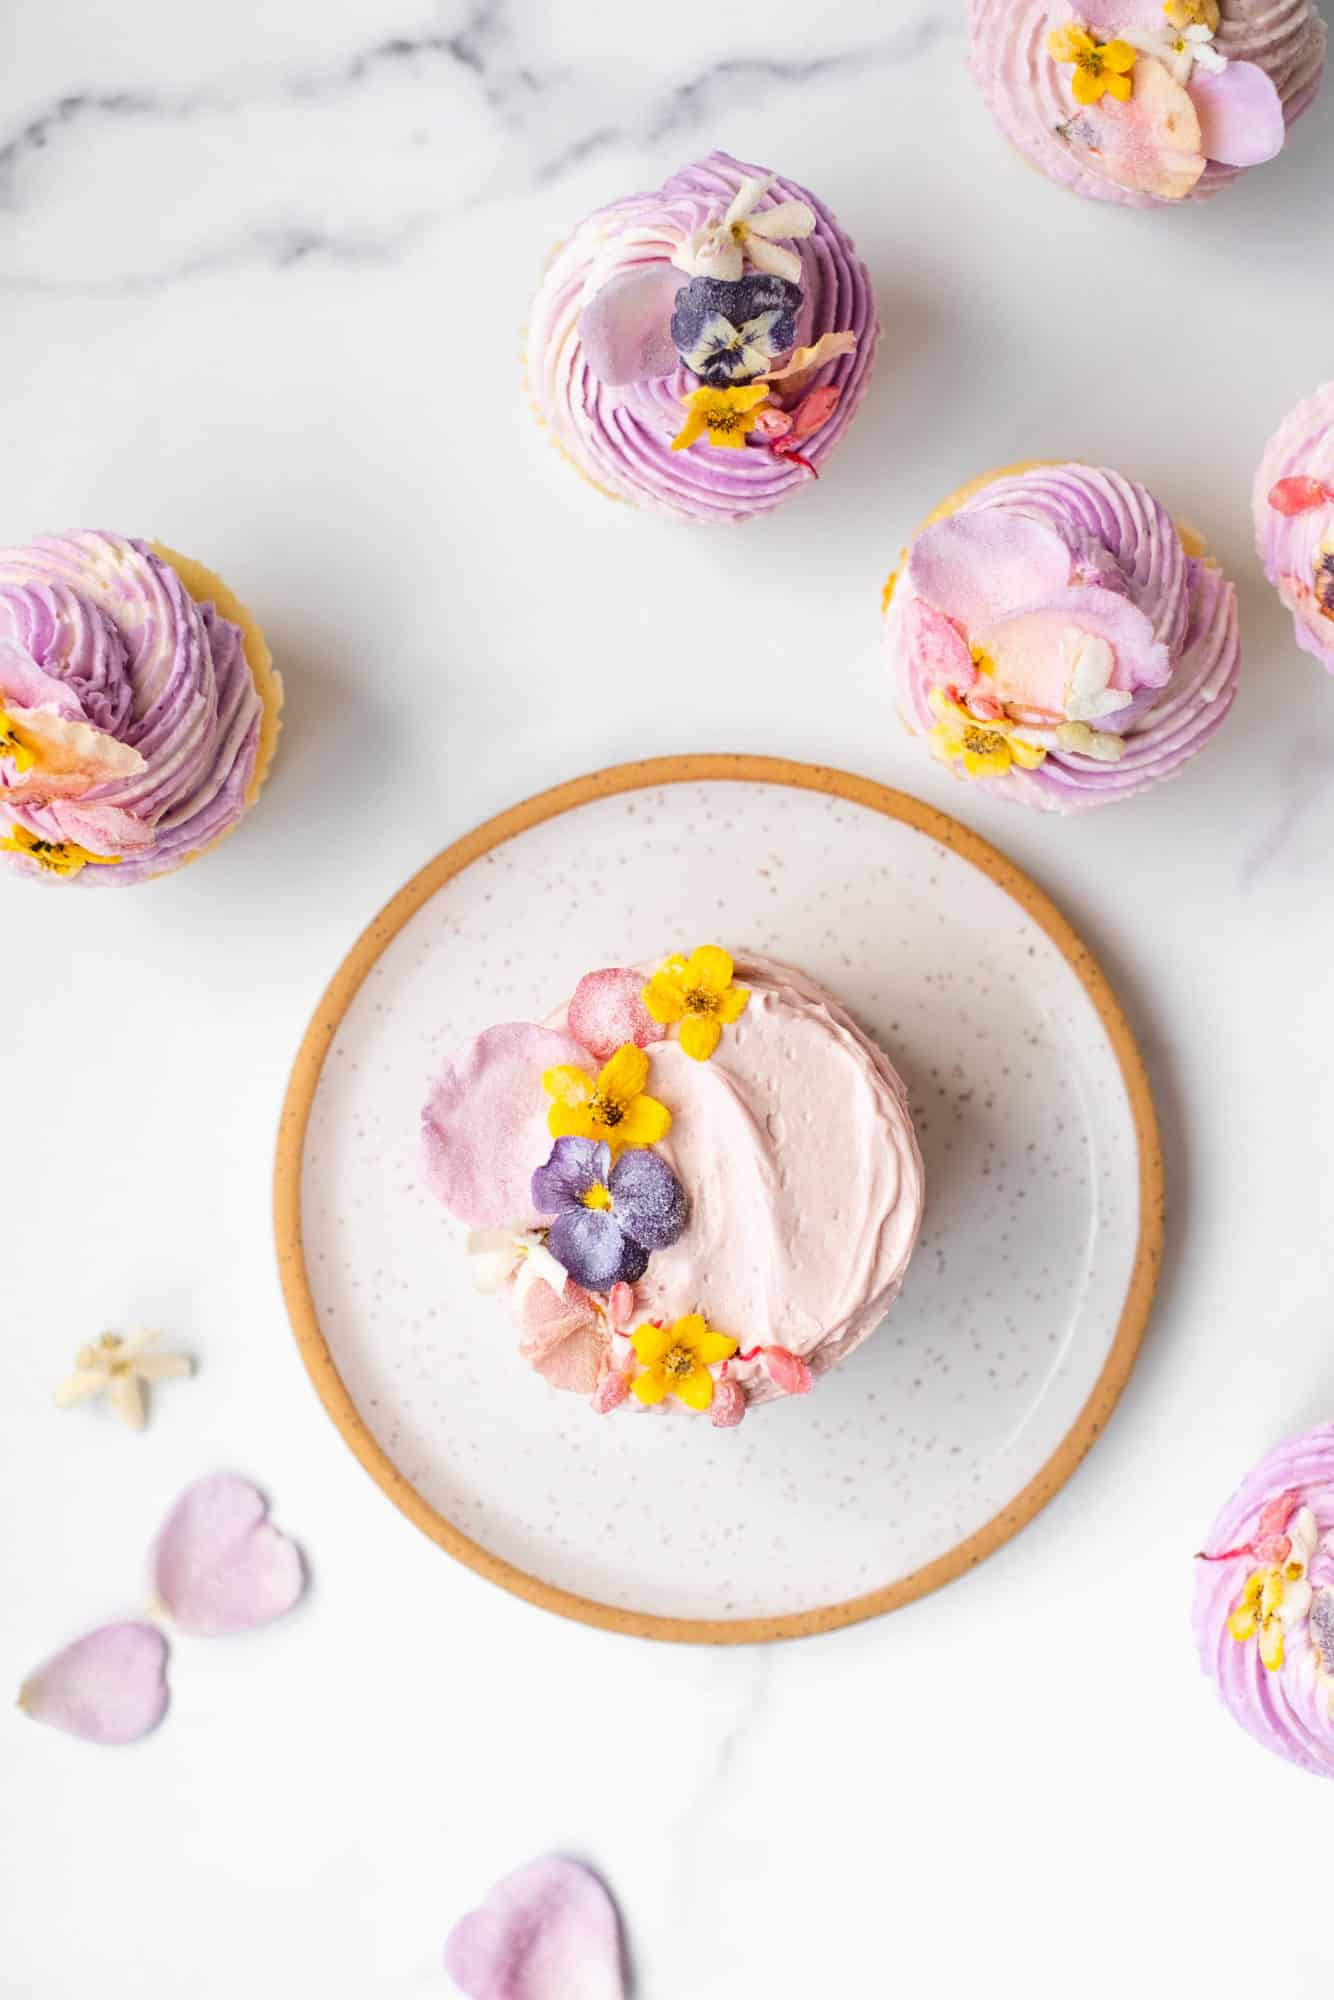 How to Candy Flower Petals